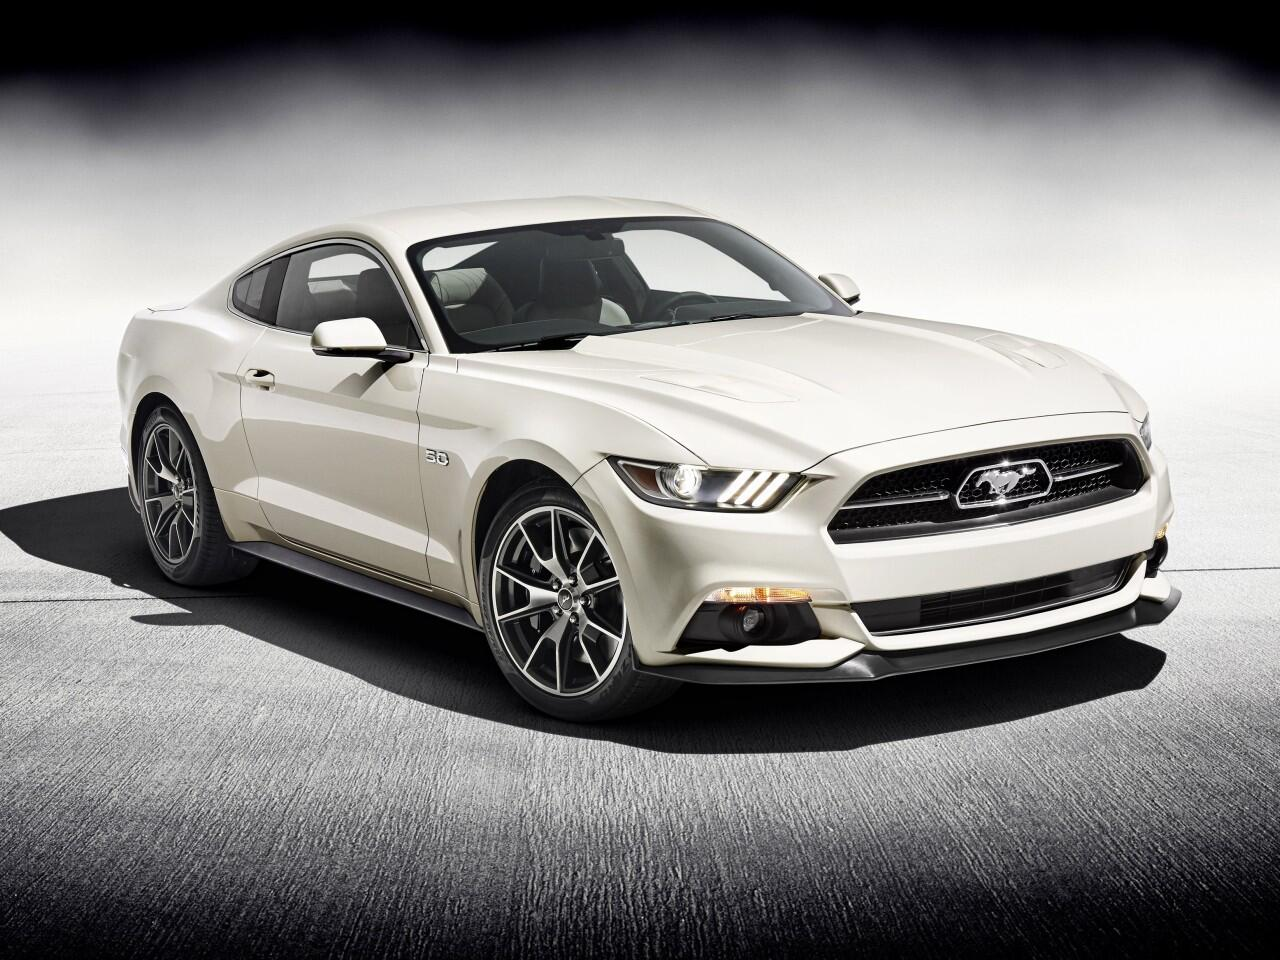 Bild zu Ford Mustang 50 Year Limited Edition